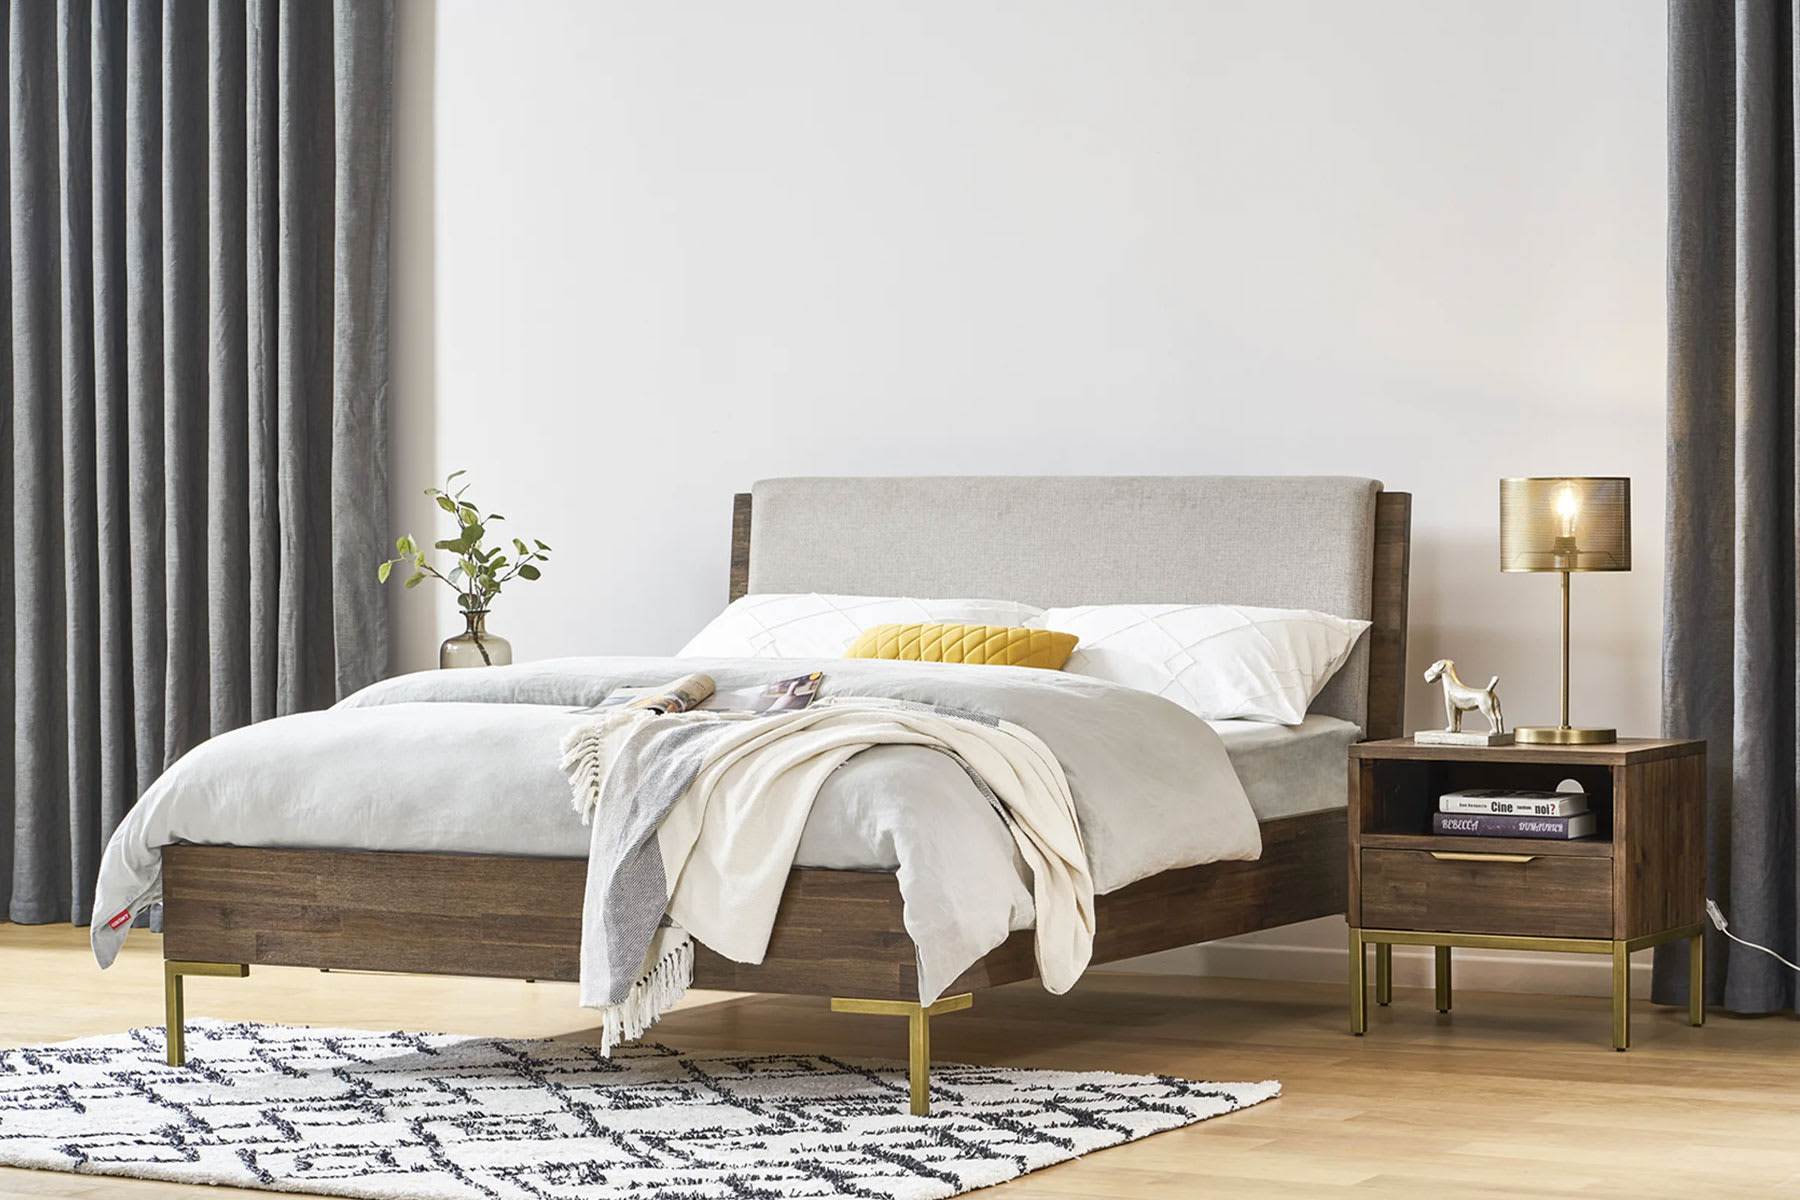 mid-century modern bedroom  with bed and side tables